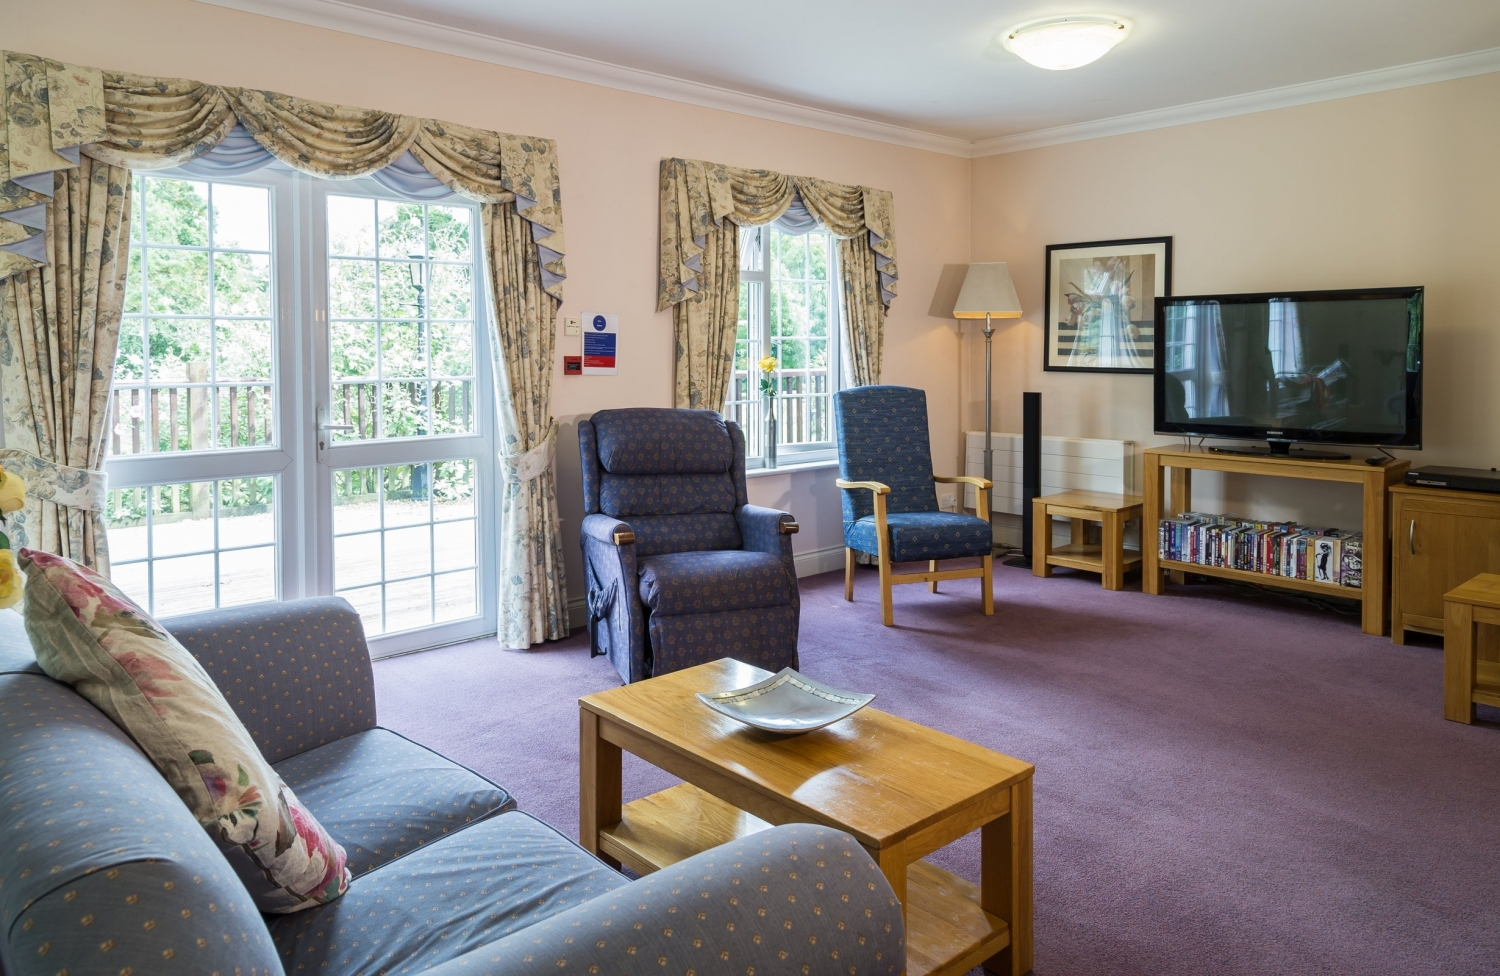 Care Homes In Swindon